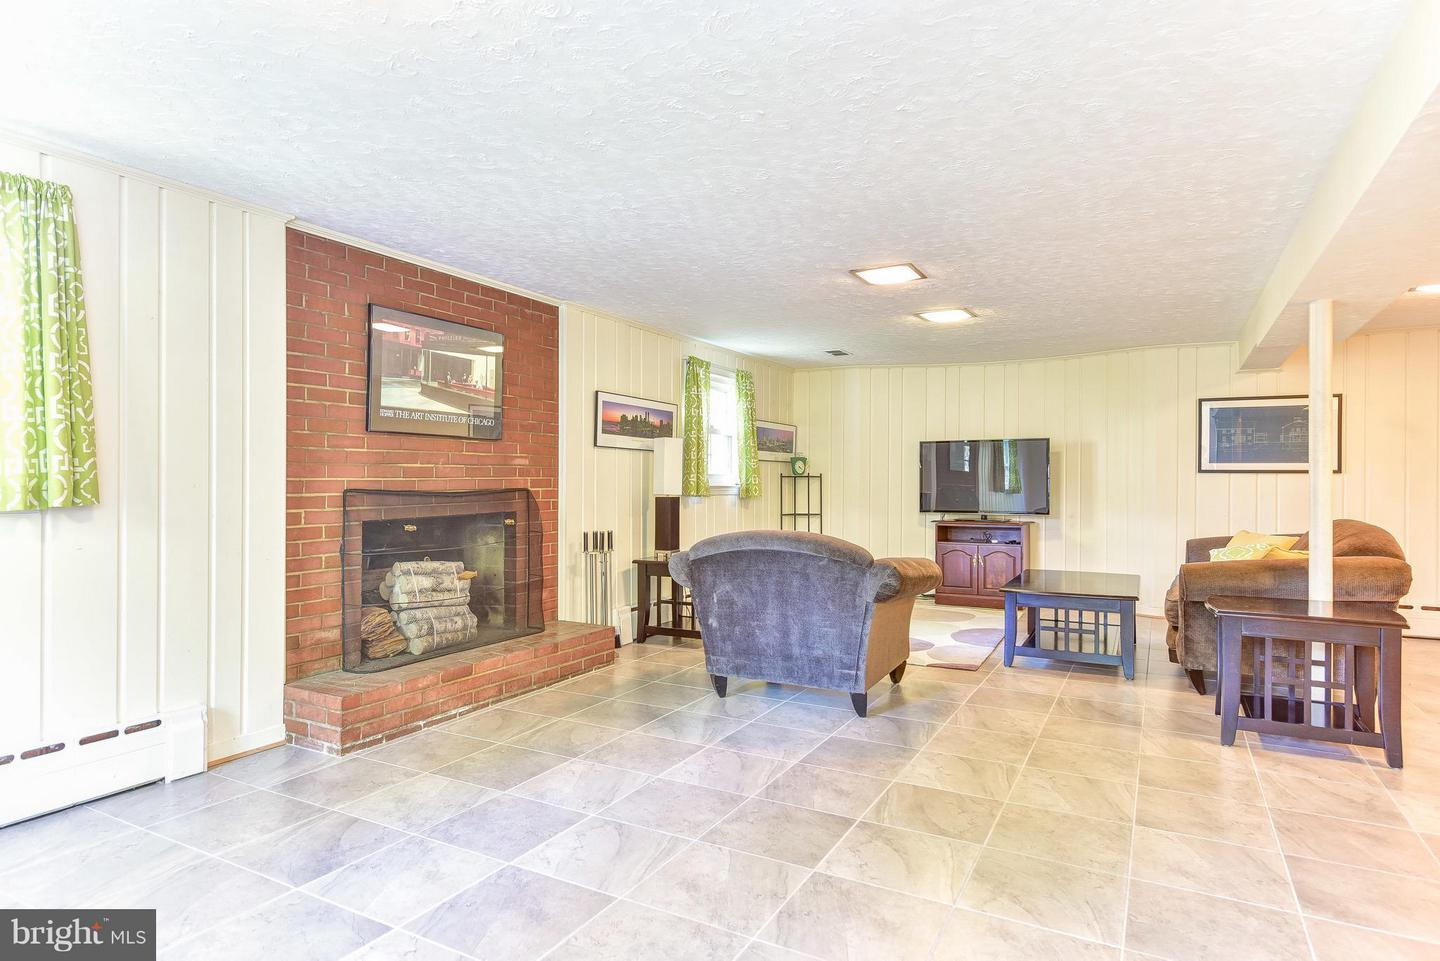 Additional photo for property listing at 1007 Westbriar Dr NE 1007 Westbriar Dr NE Vienna, Virginia 22180 United States